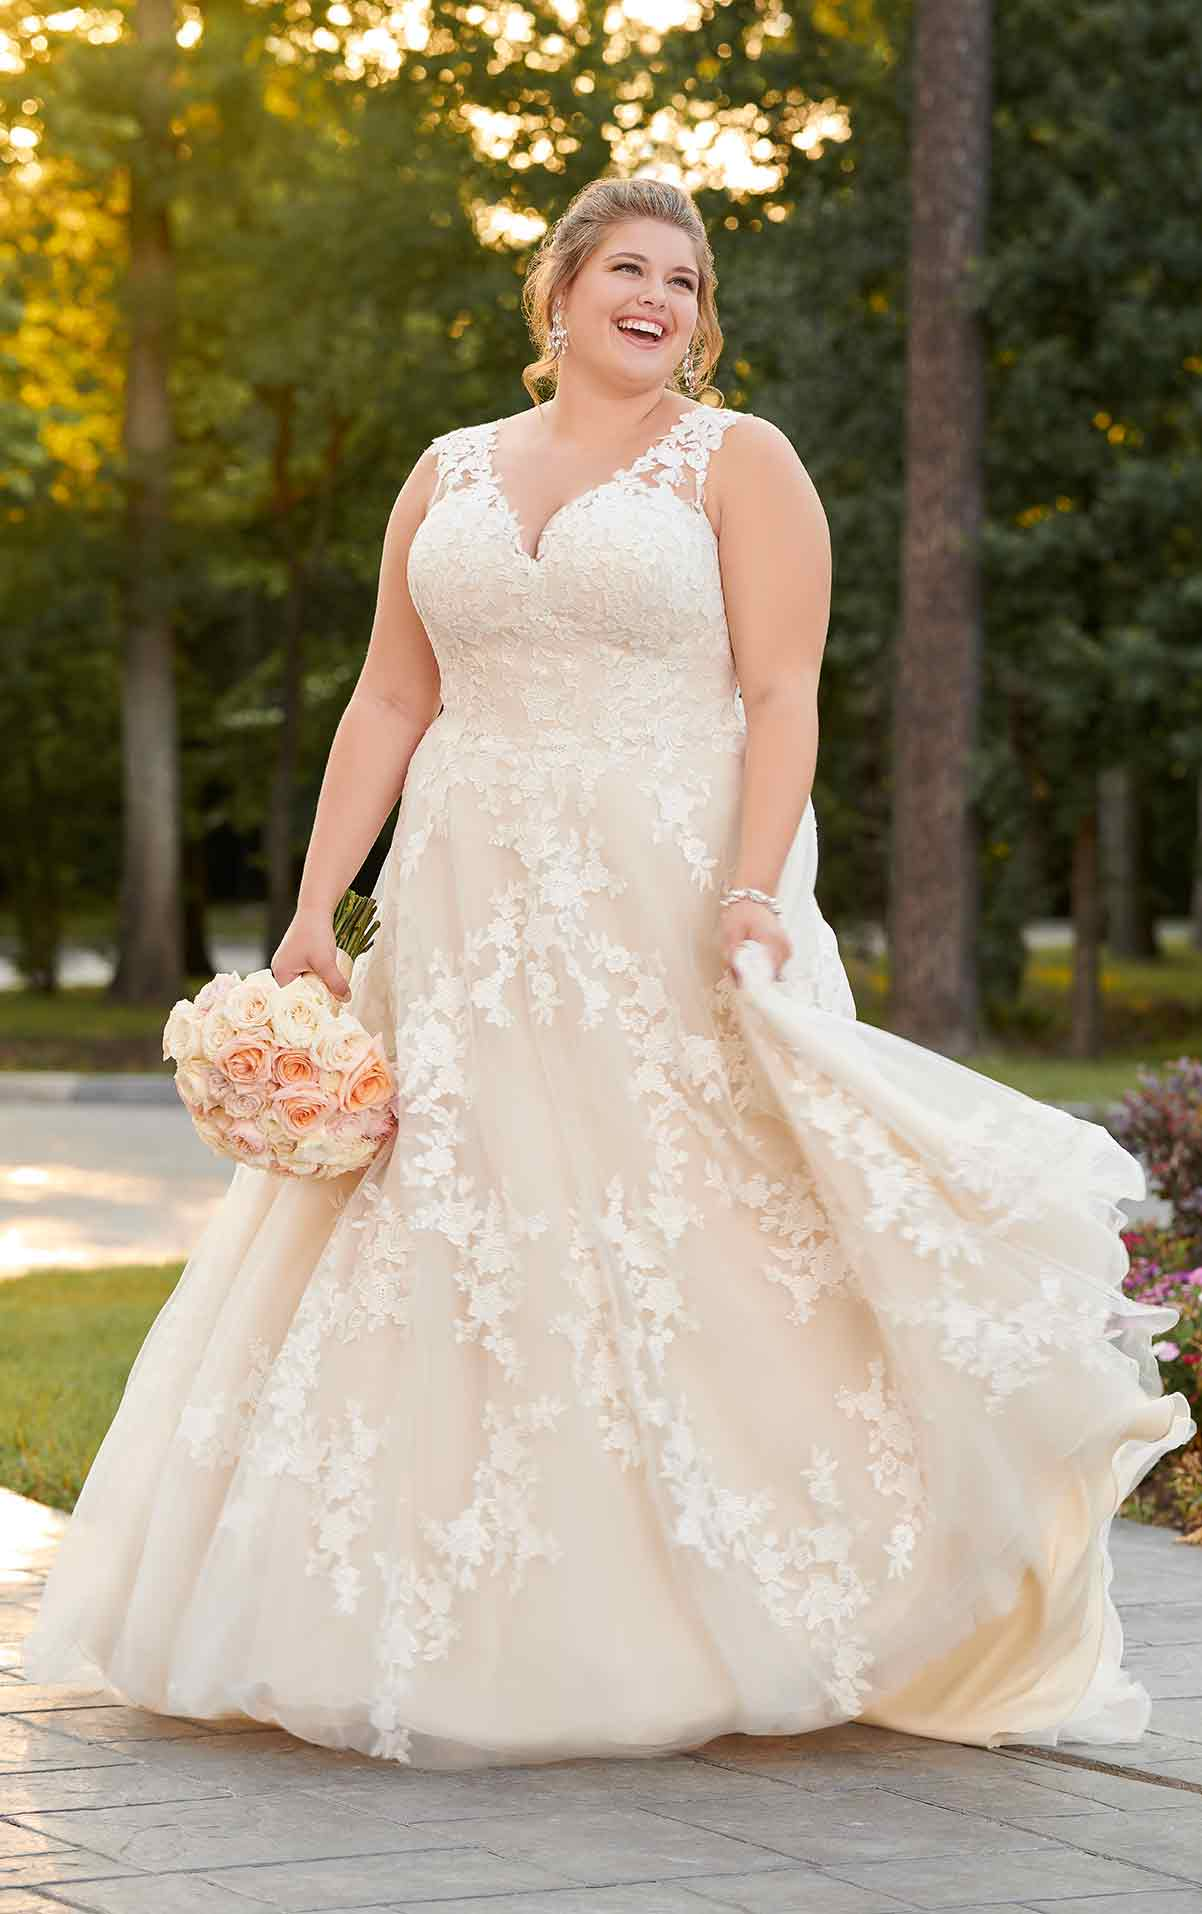 plus-sized bride in flowing lace gown